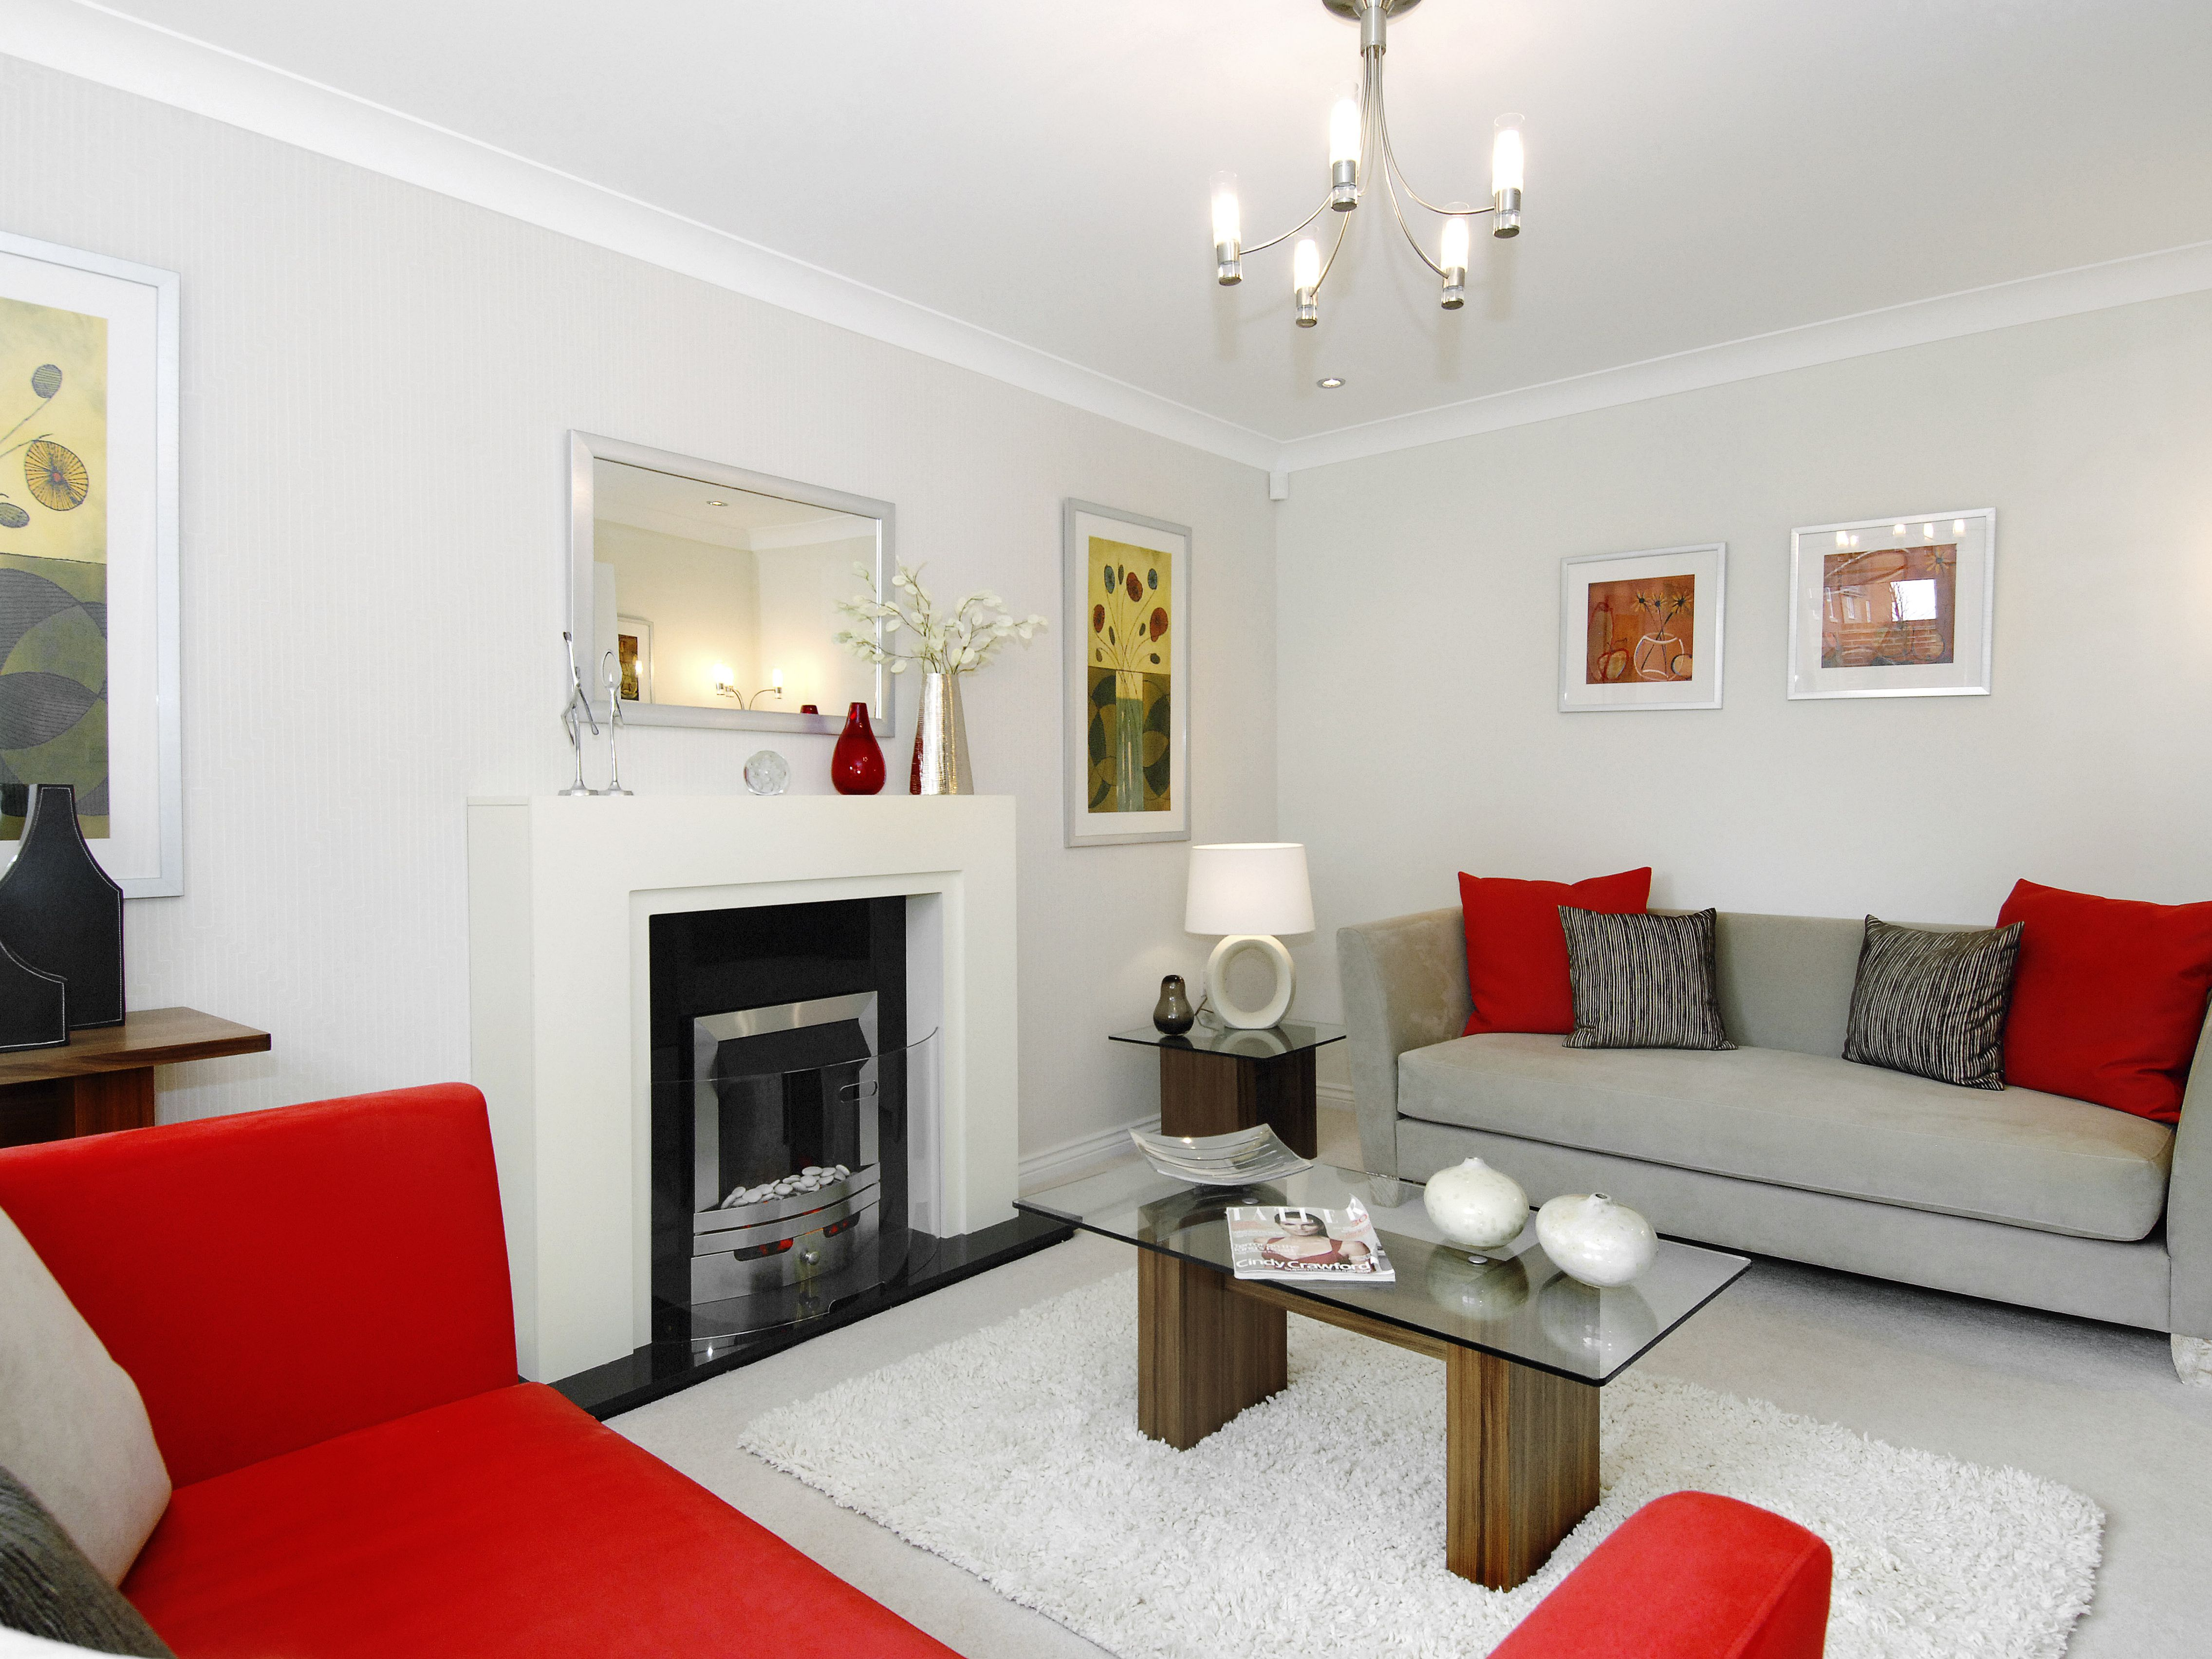 Checklist To Furnish Your Dream Home On A Budget